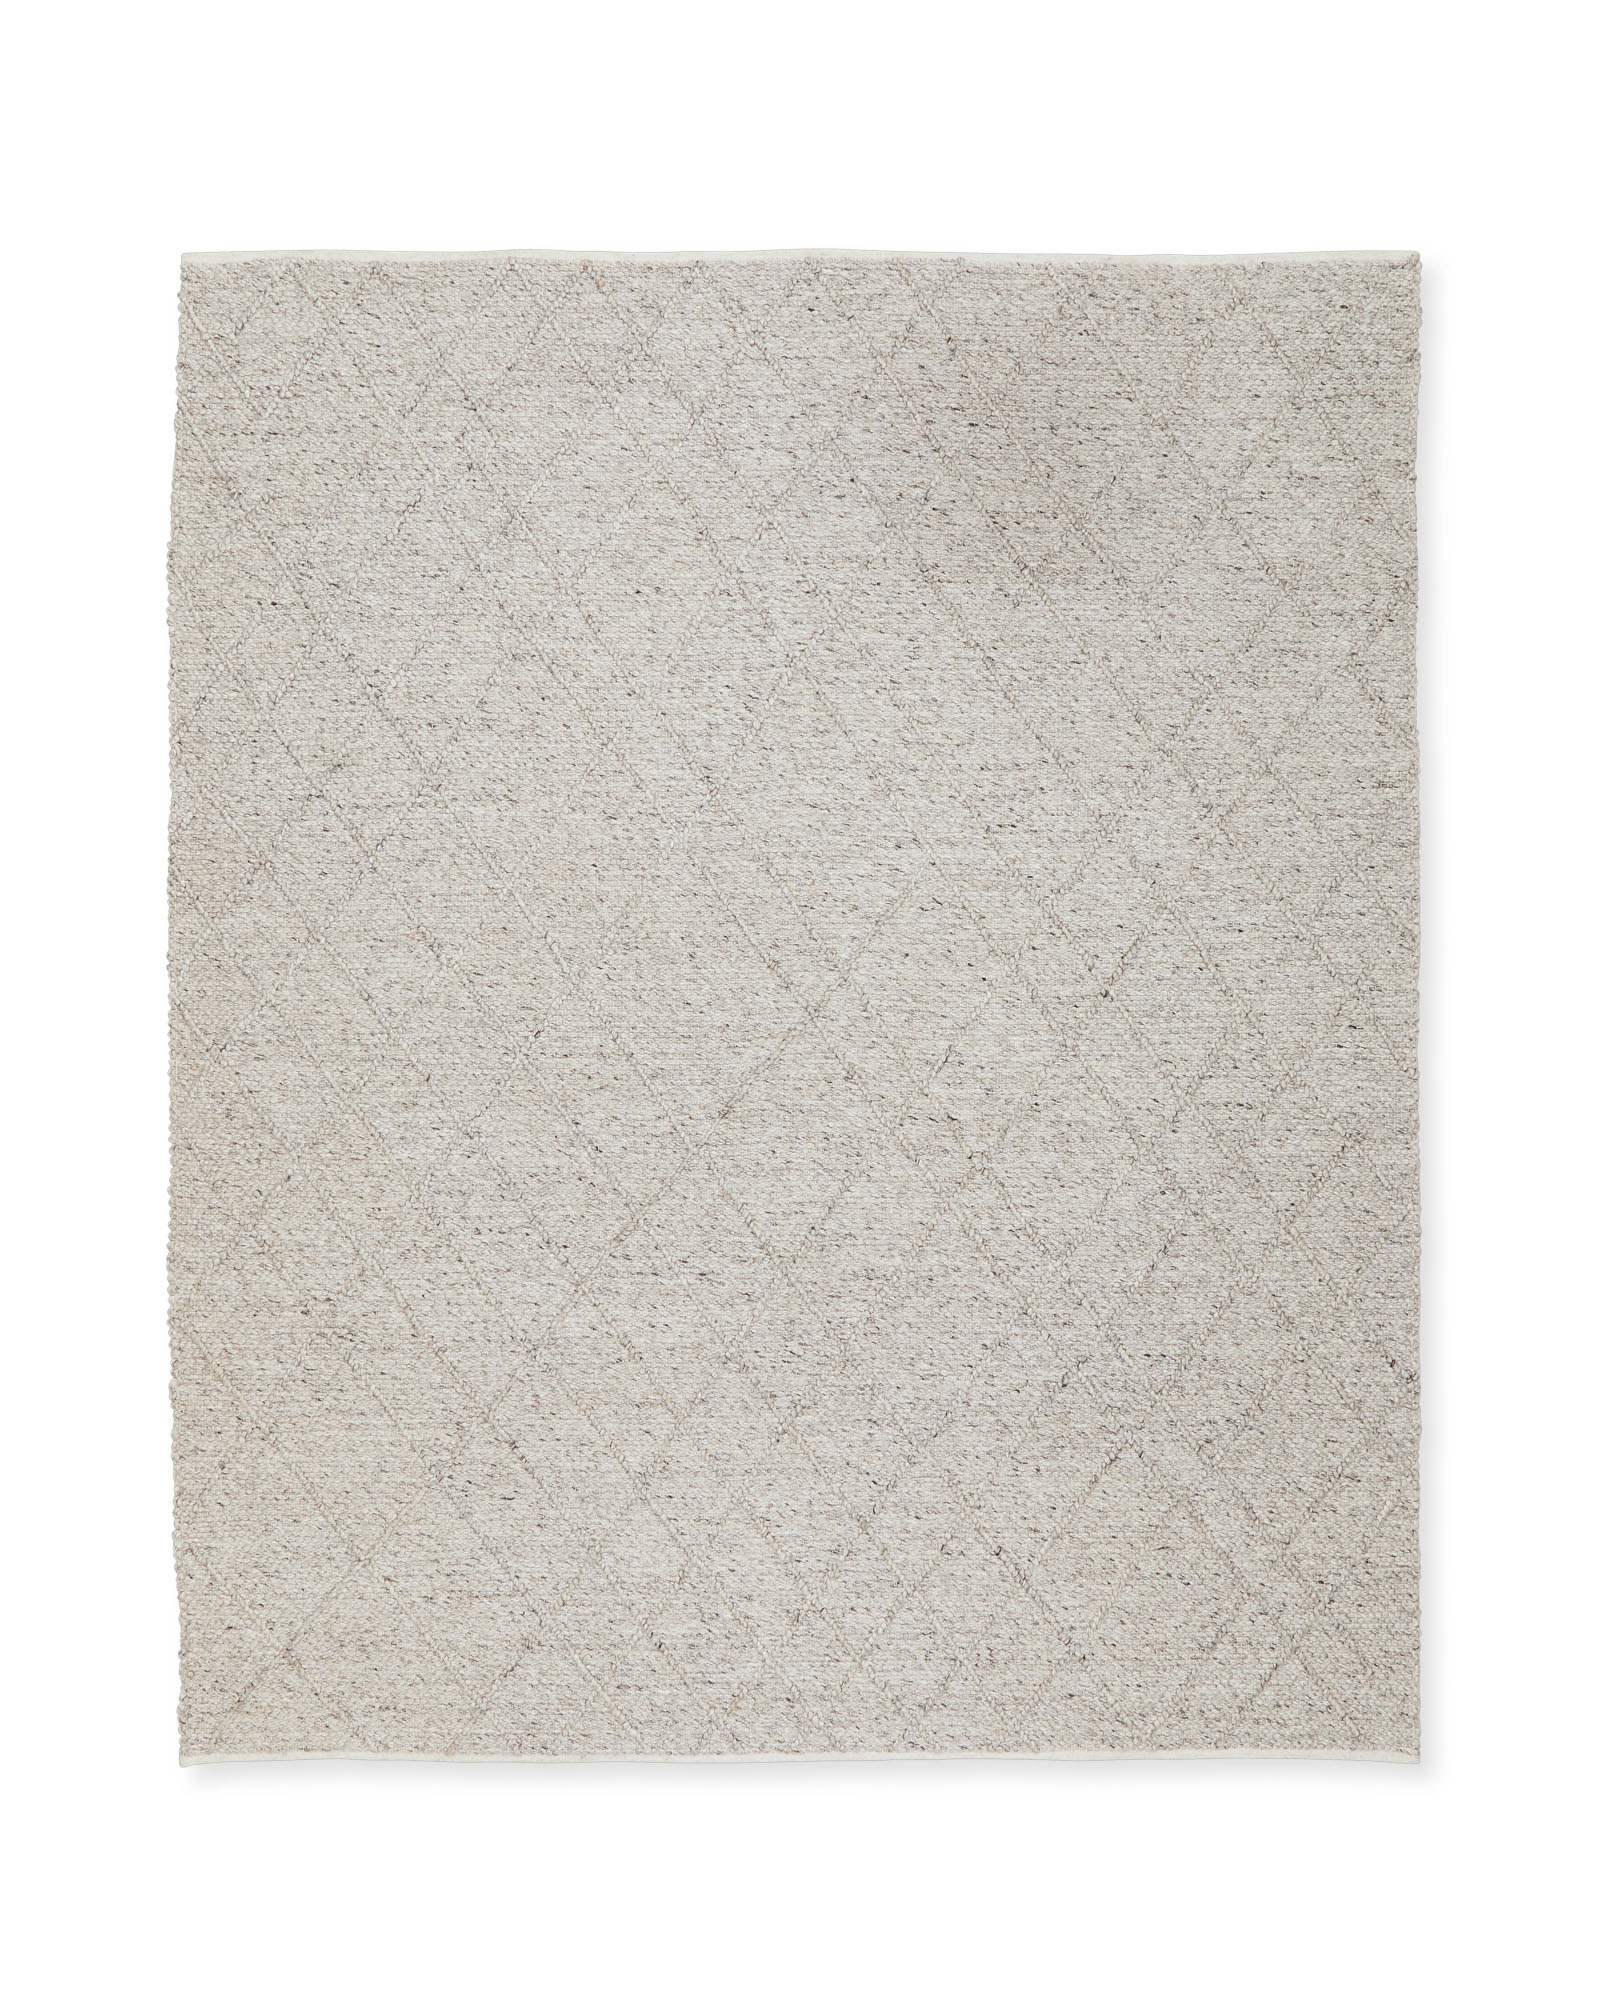 Mulberry Rug,